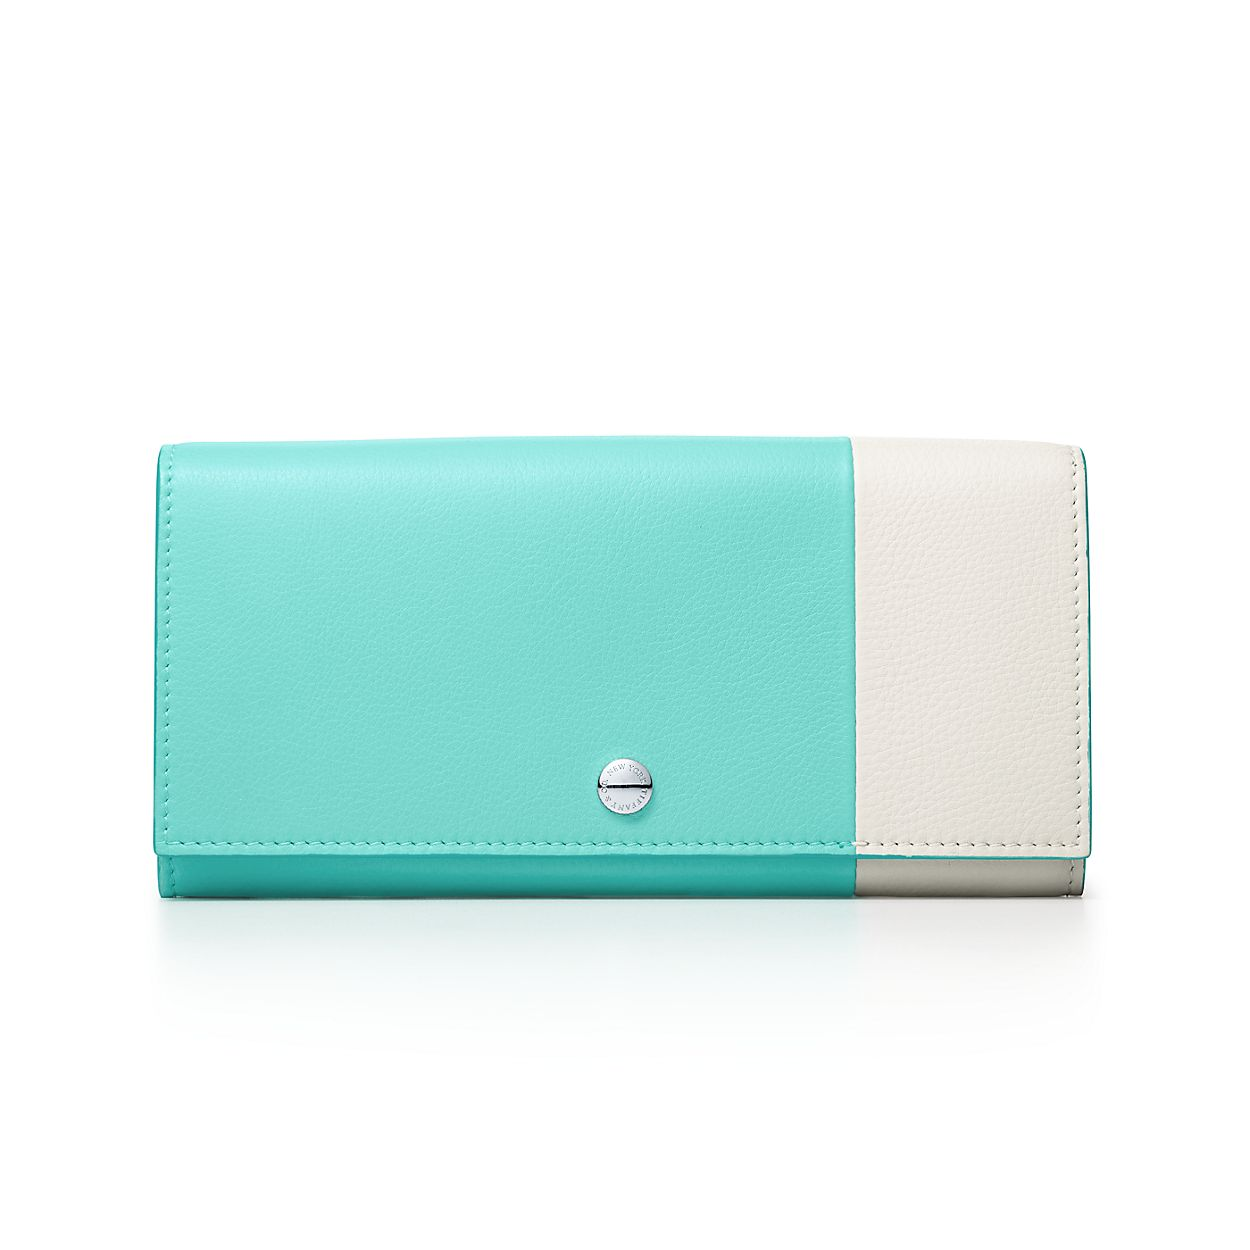 Color Block zip wallet in off-white and Tiffany Blue grain calfskin leather Tiffany & Co. 75IV0TKNKP